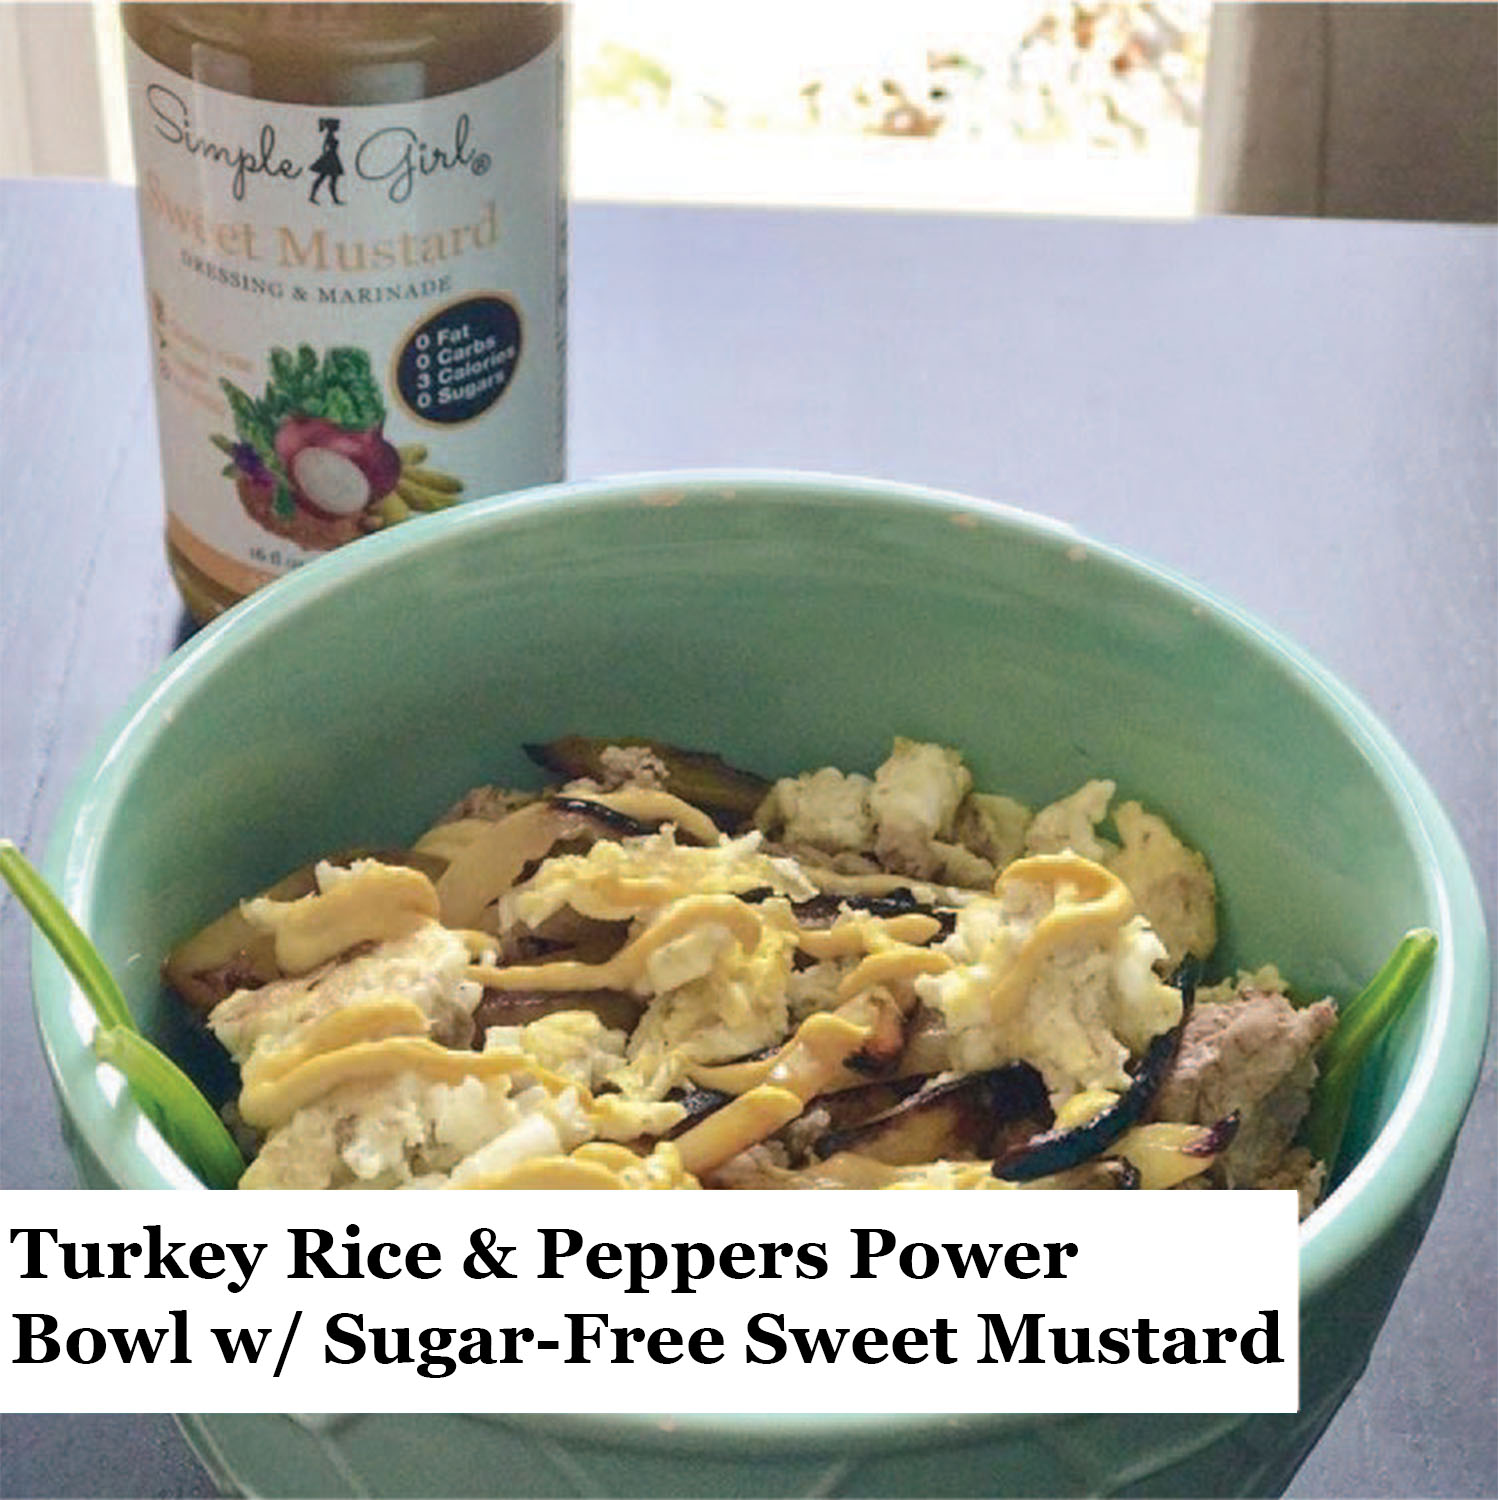 turkey-rice-peppers-power-bowl-with-sugar-free-sweet-mustard-1-.jpg